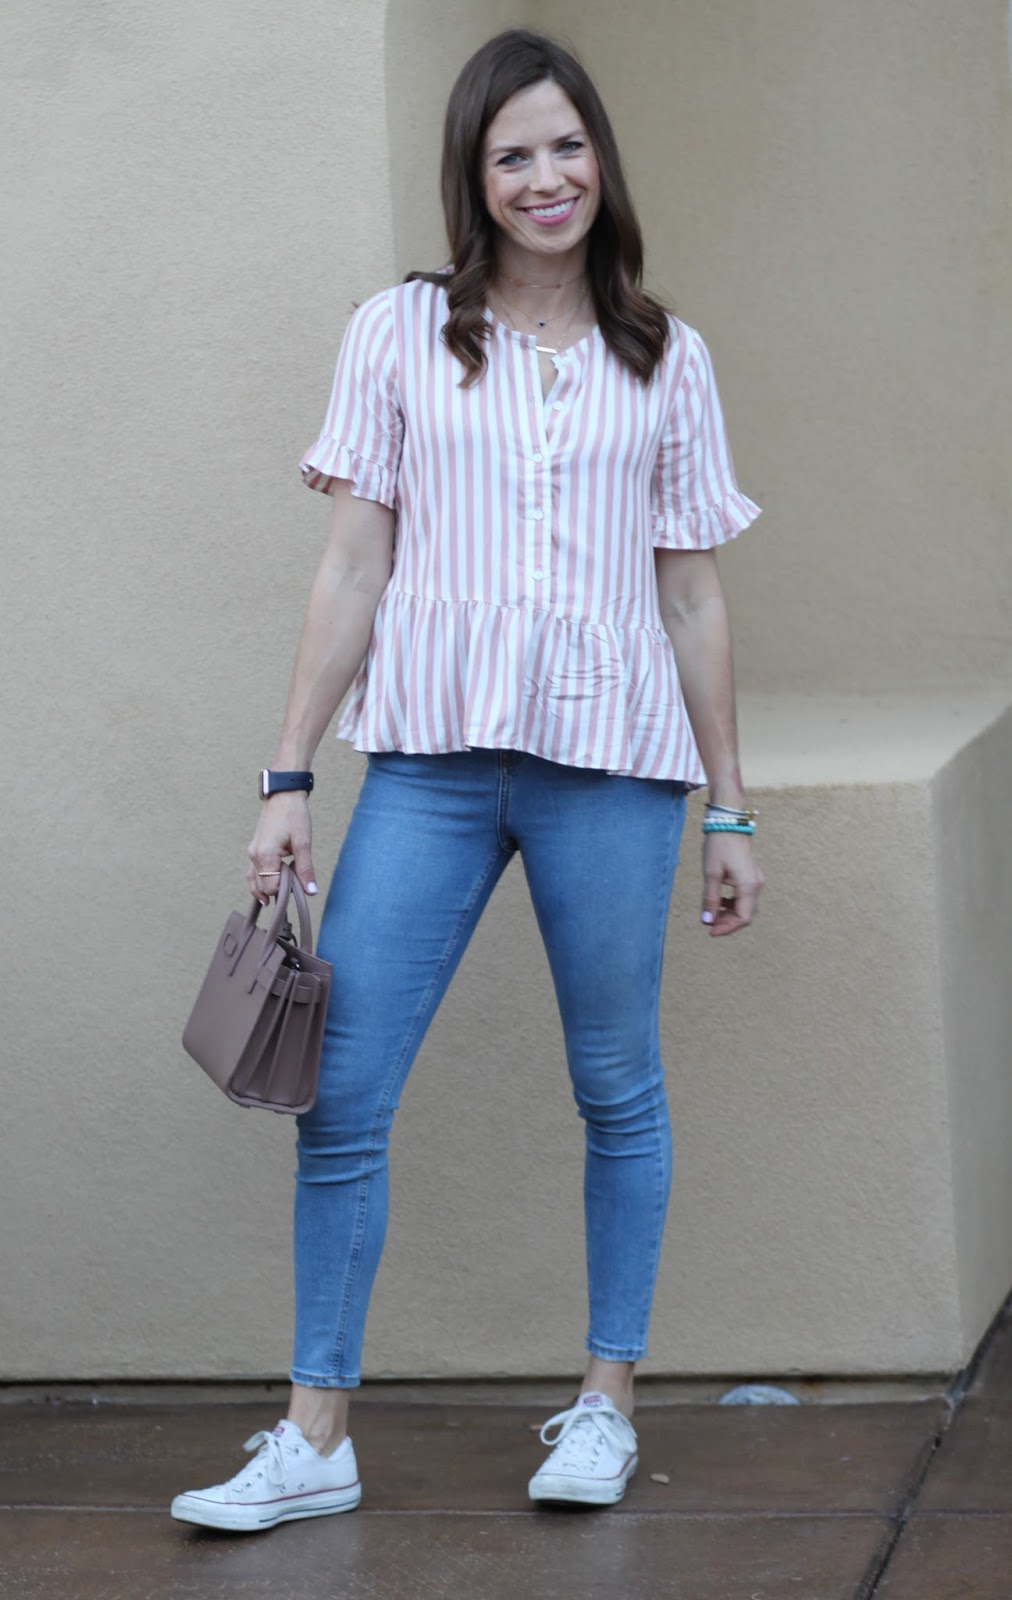 striped peplum top and white sneakers outfit